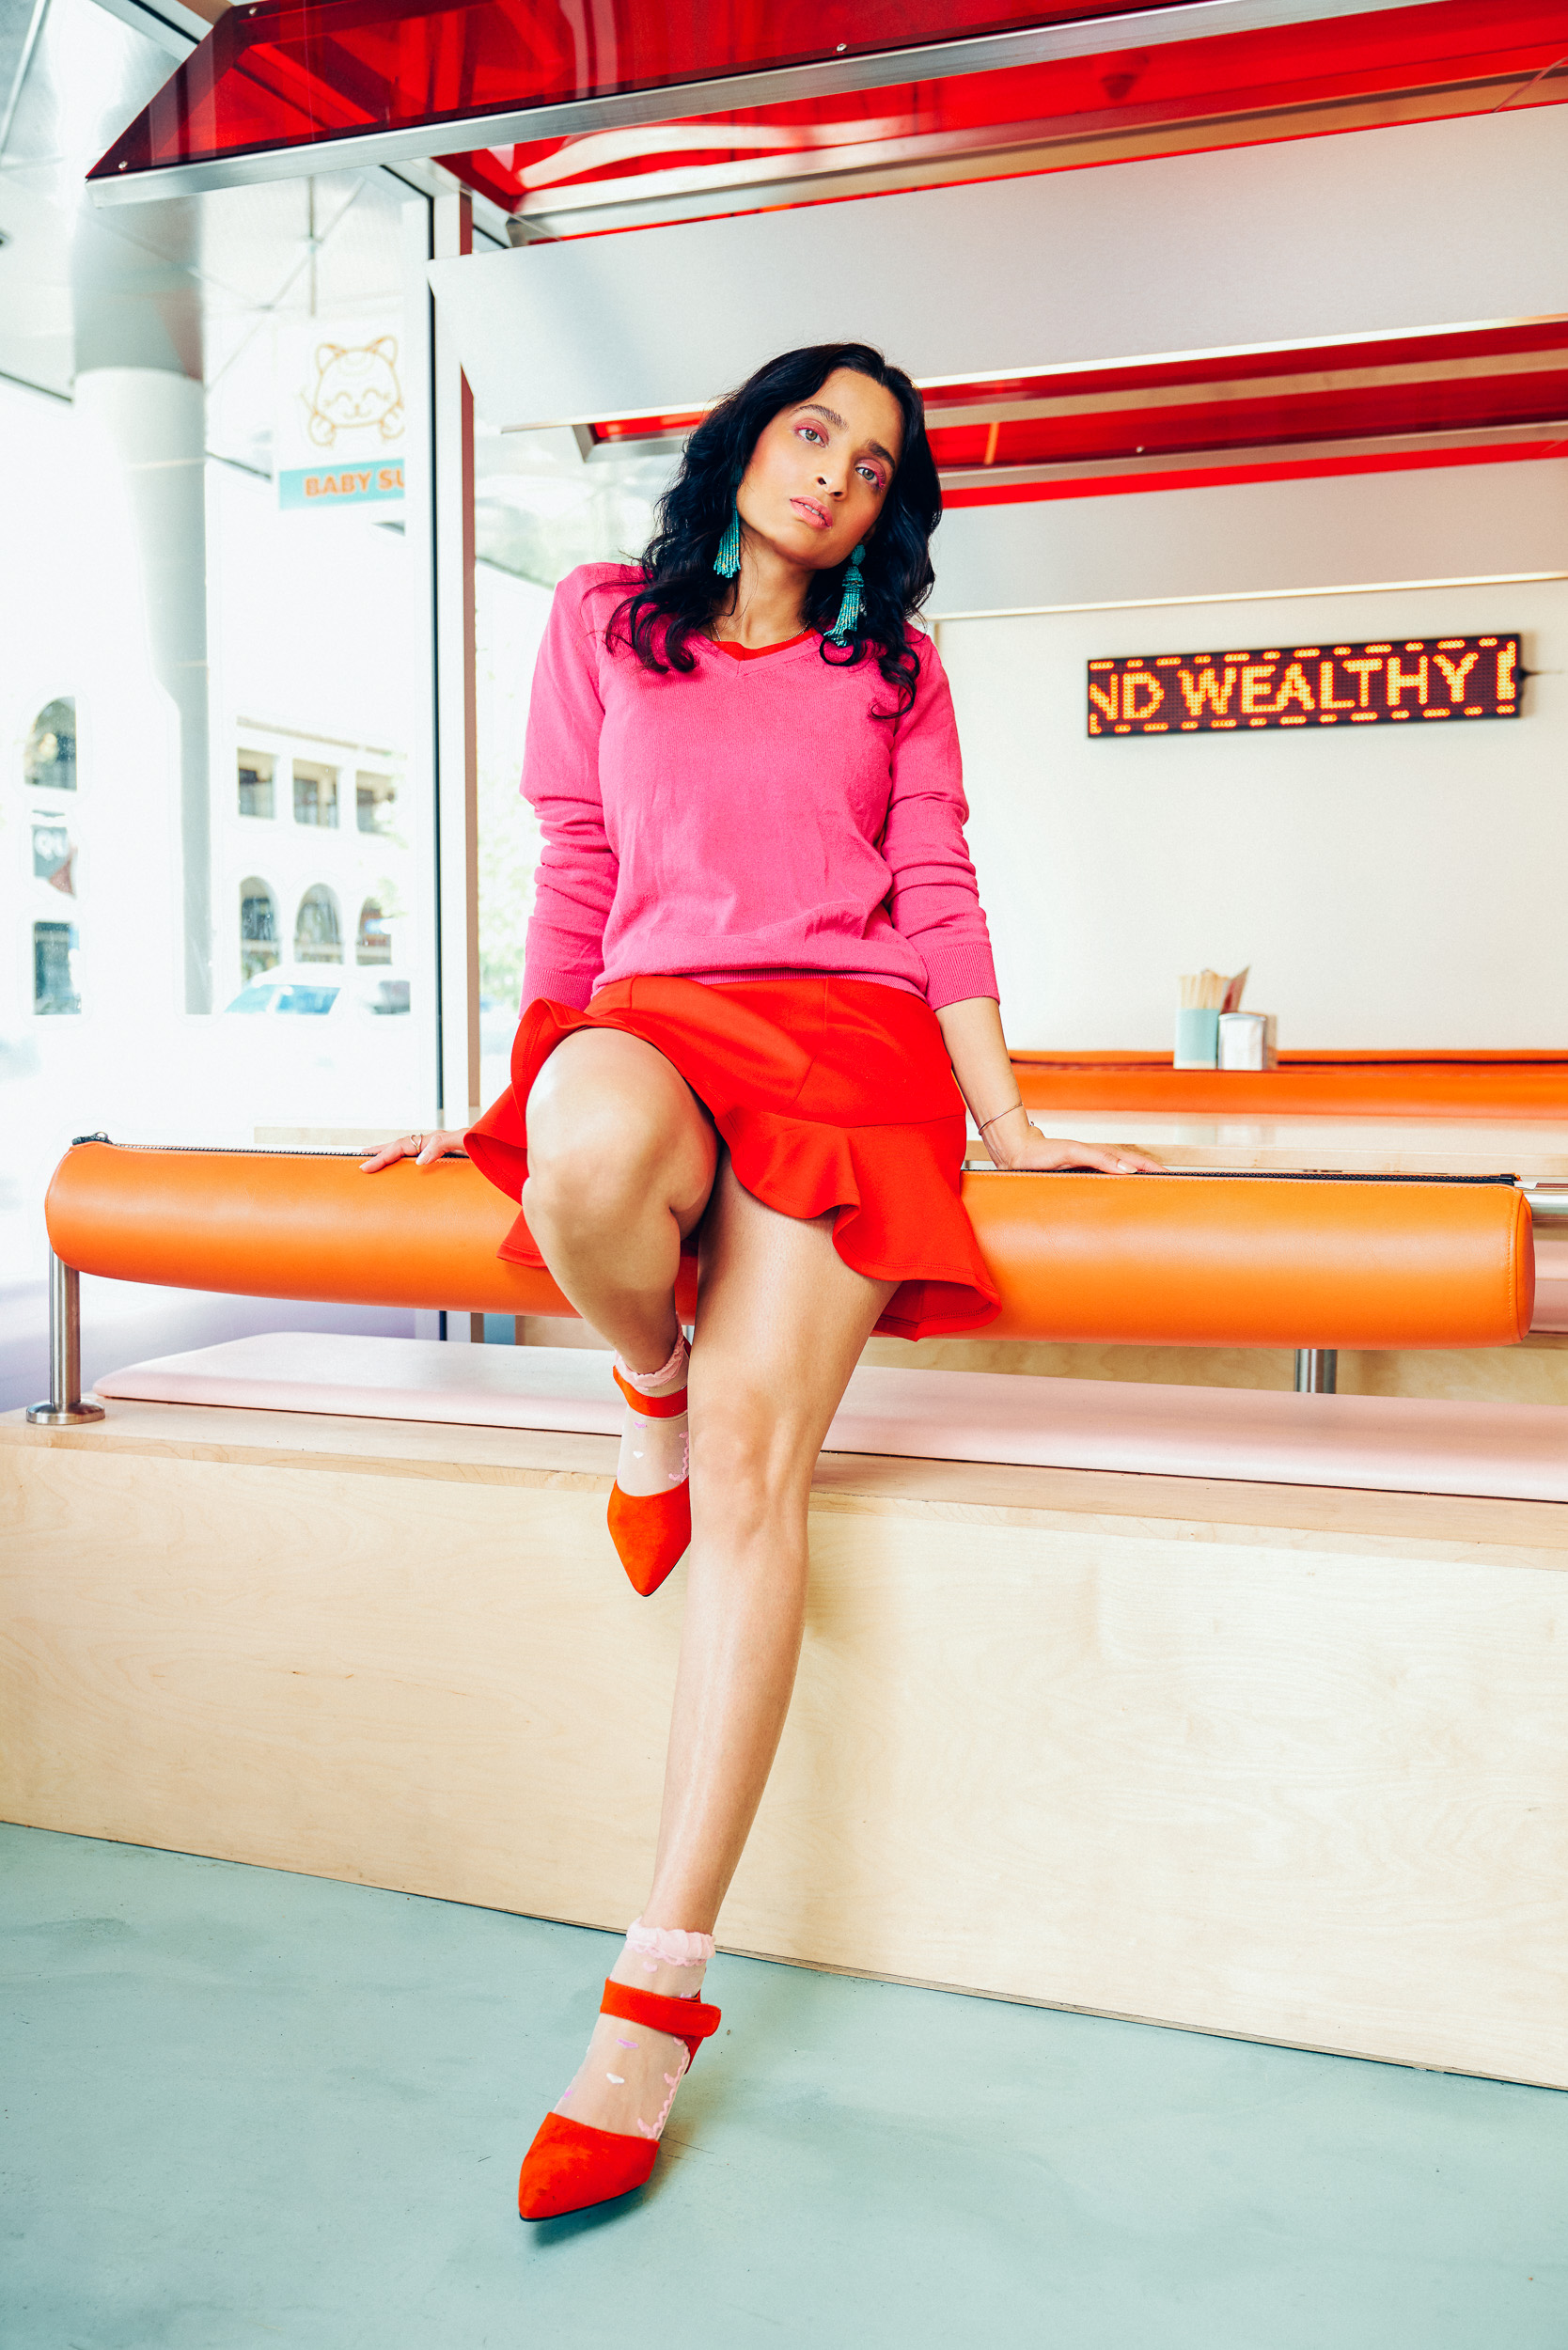 Girl posing in restaurant with pastel interiors wearing red dress and pink sweater outfit. Illustrative image for to discuss what i wish my younger self knew